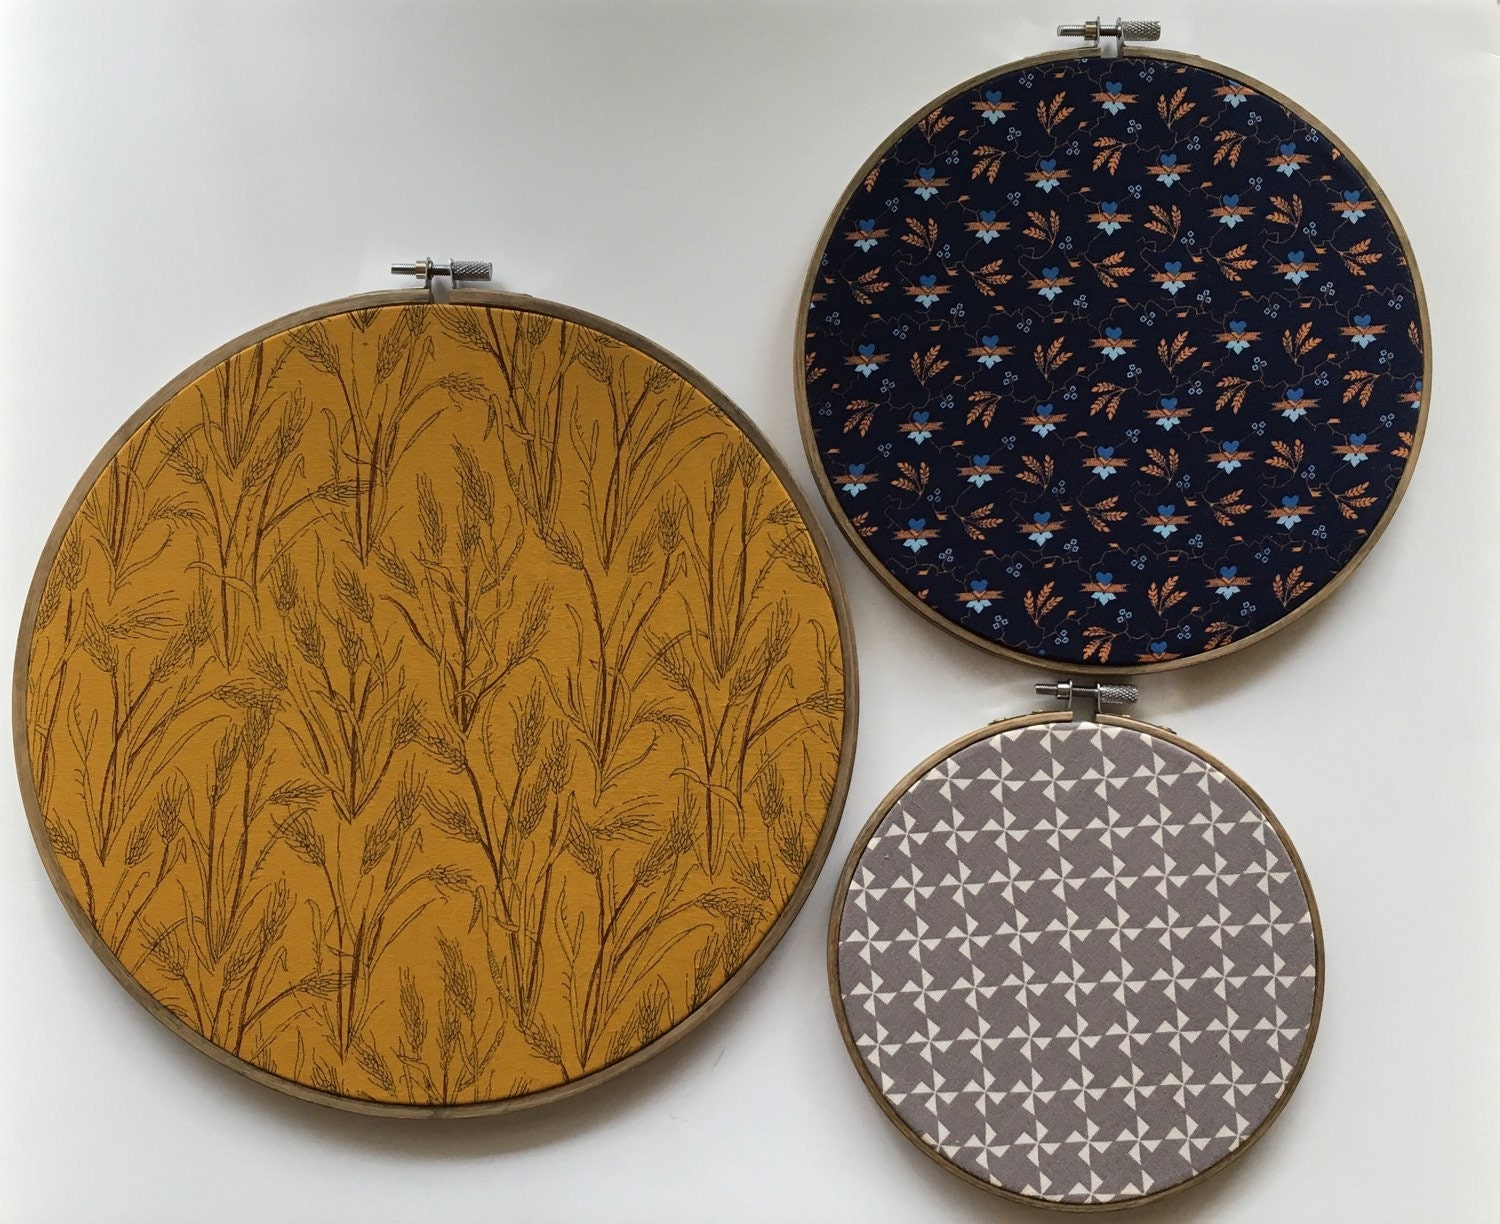 Fabric hoop art set of embroidery wheat by